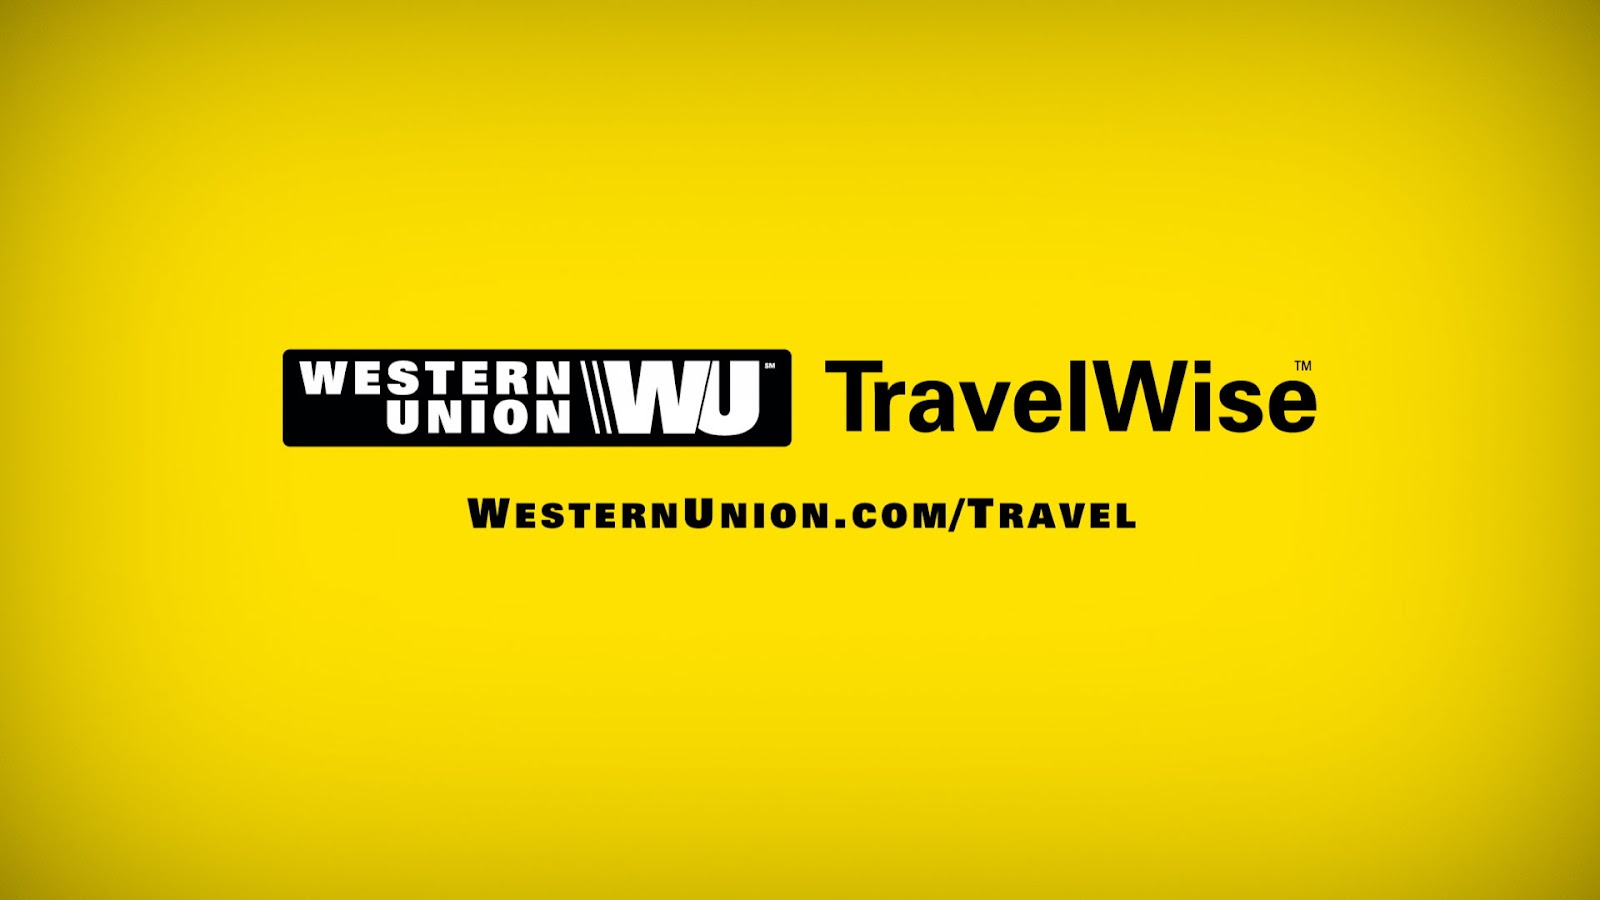 Western union - Having Access To Cash While Traveling Can Be Difficult But Western Union Set Out To Make It Easier With A New Way To Send Money To Yourself Globally